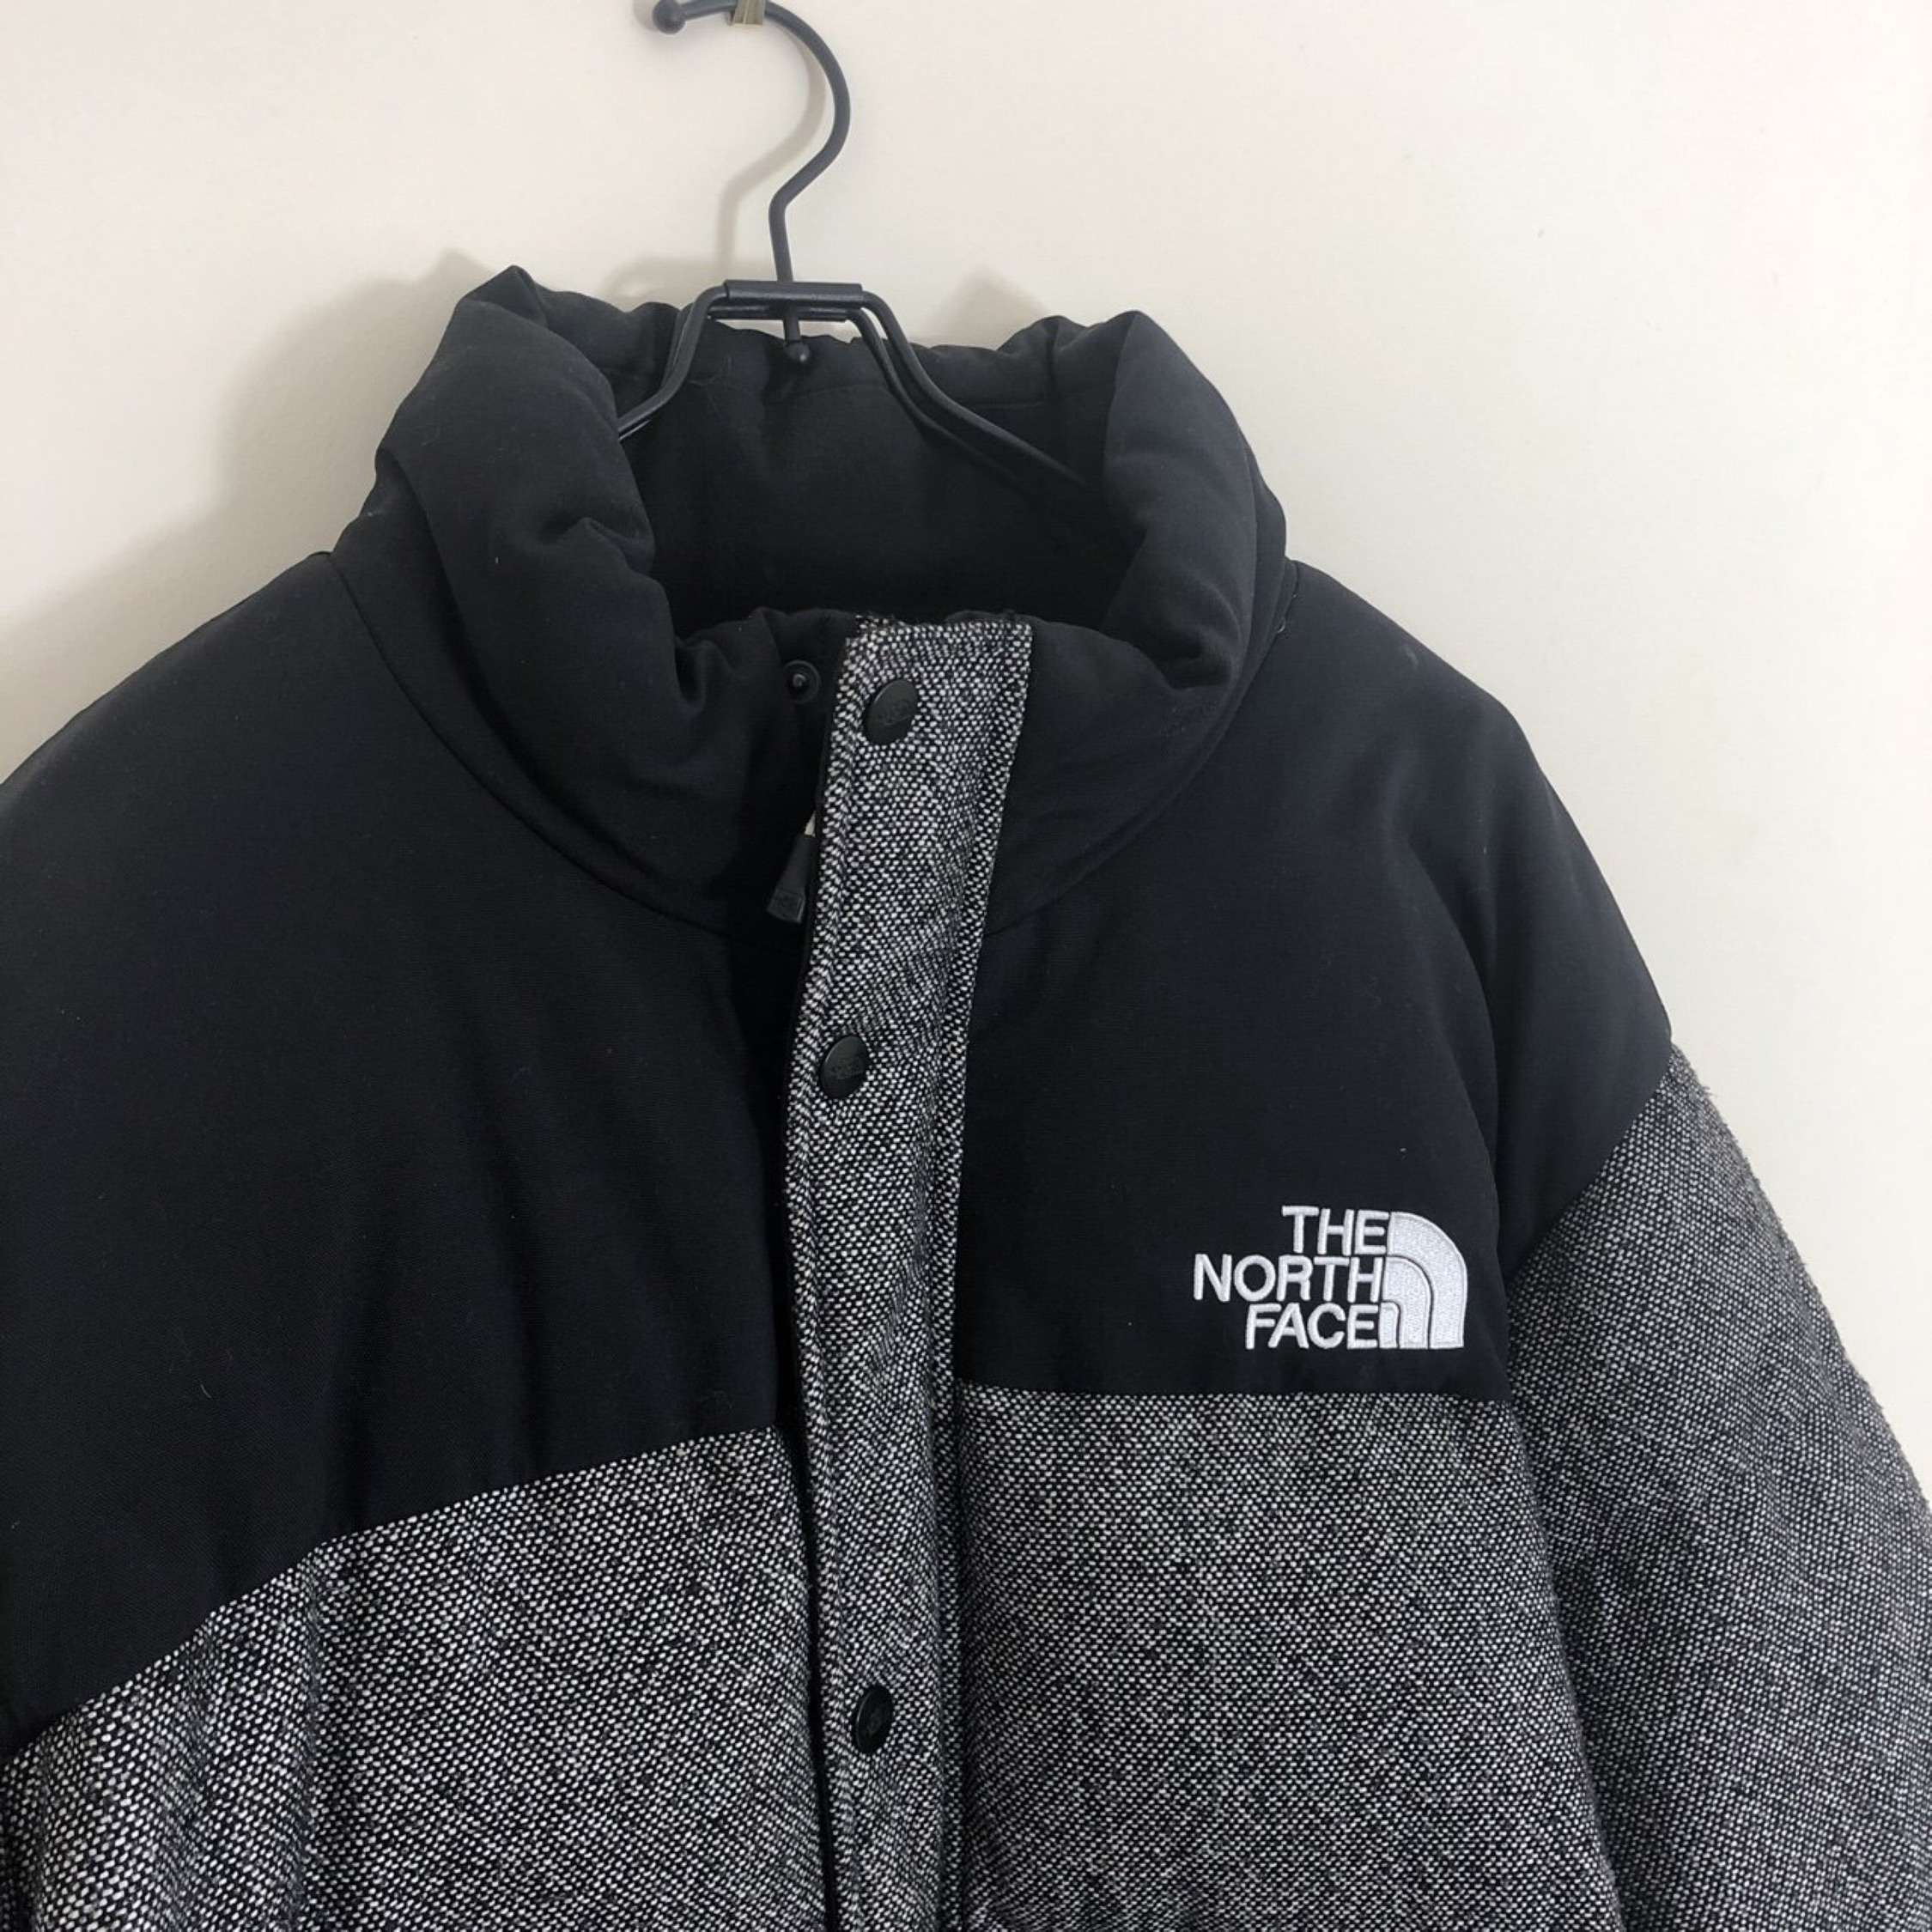 c4be9bbb7 The North Face 550 Puffer Jacket